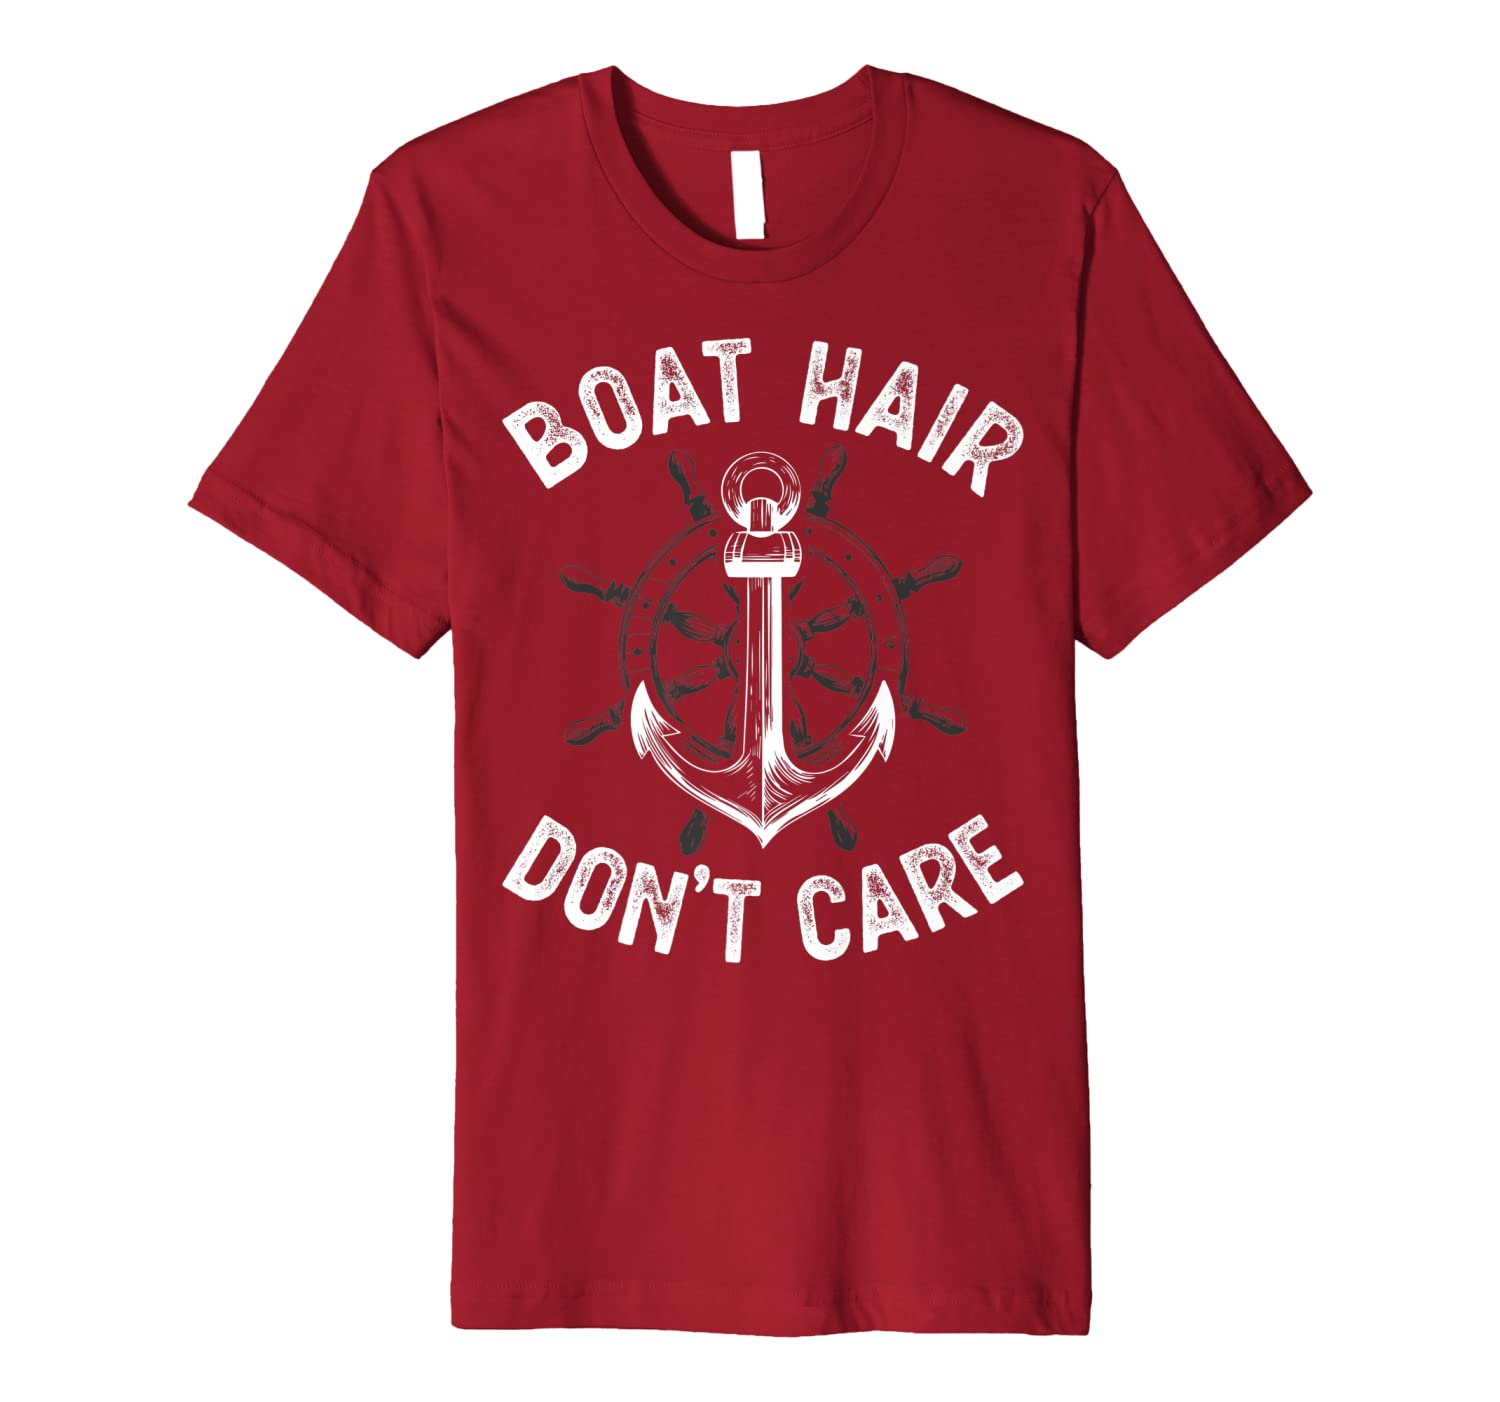 Boat Hair Don't Care T Shirt Girls Women Funny Boating Gifts